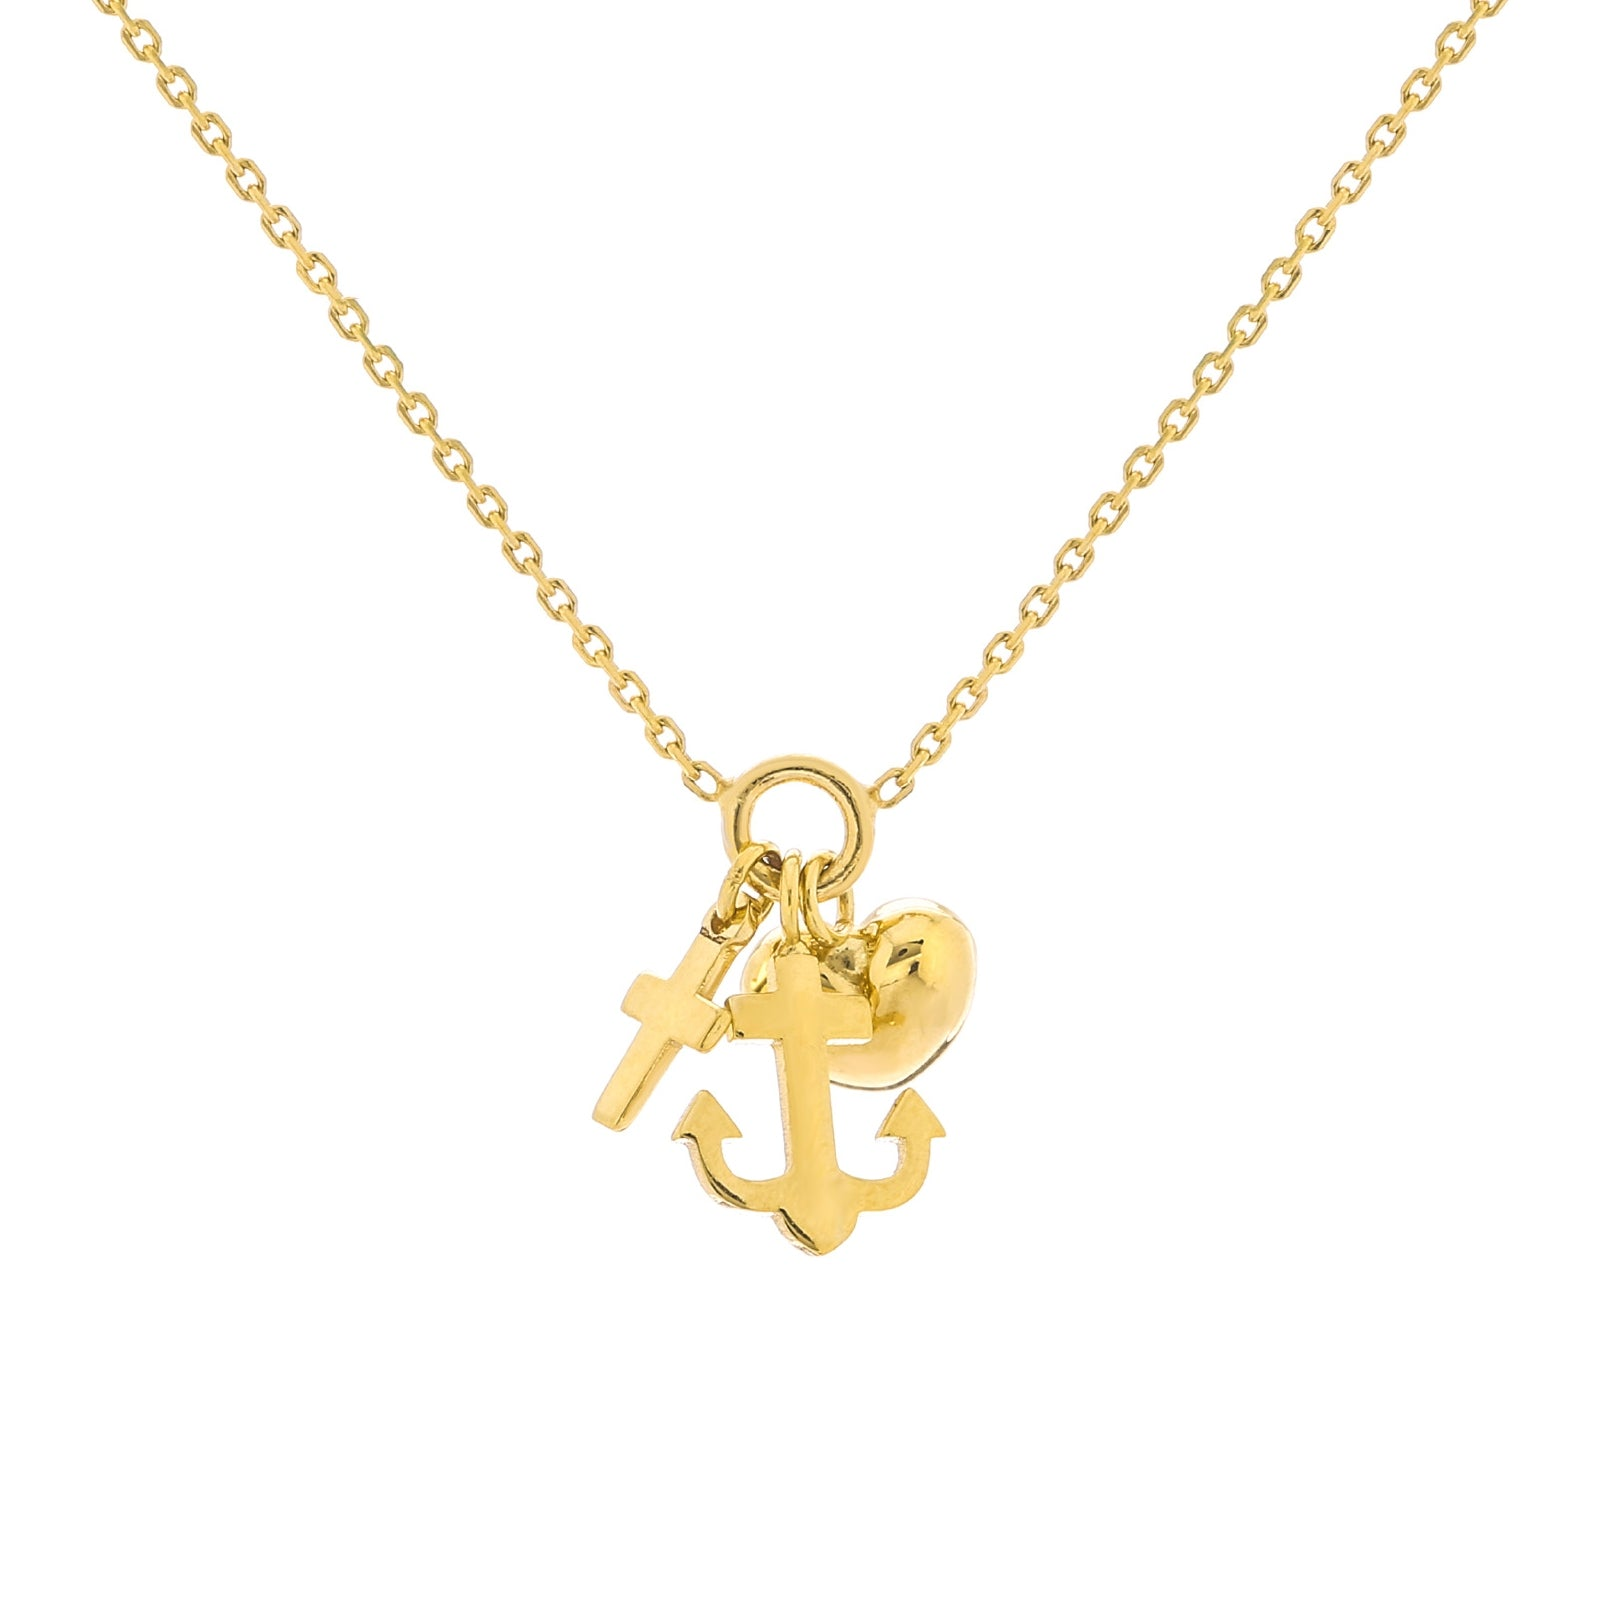 Faith, Hope and Charity Charm Necklace, 14K Yellow Gold